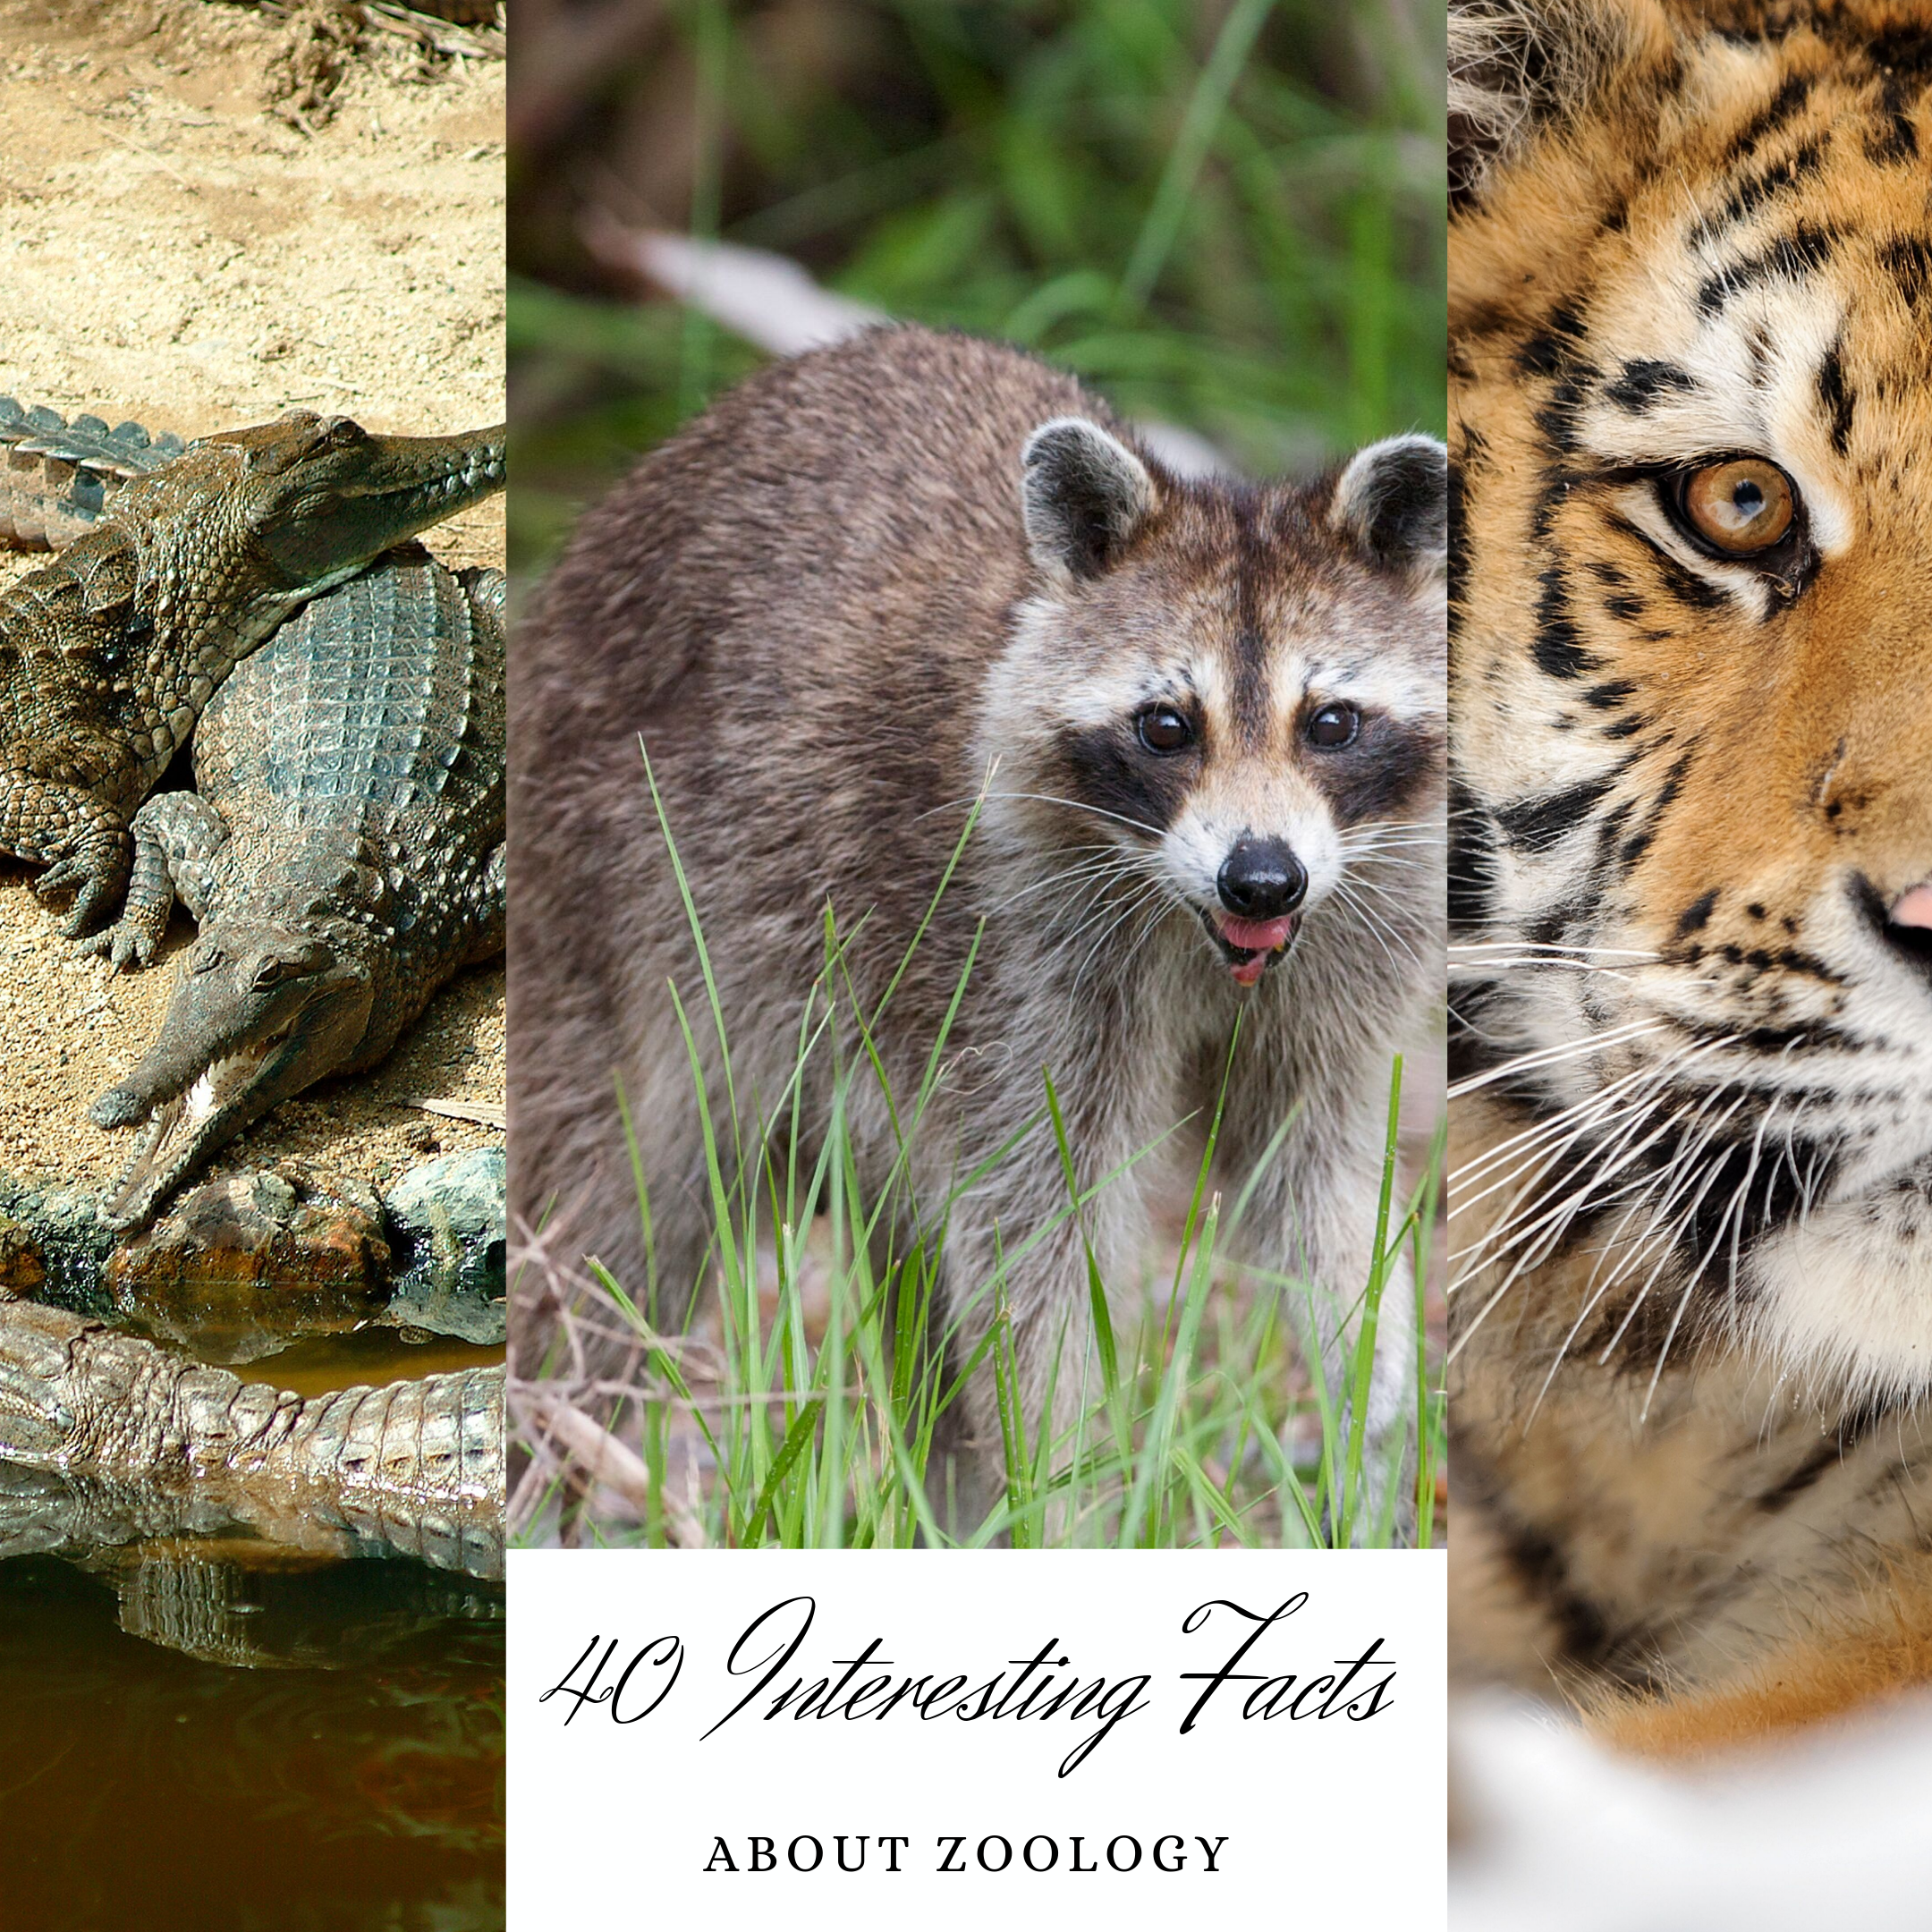 40 Amazing Facts about Zoology